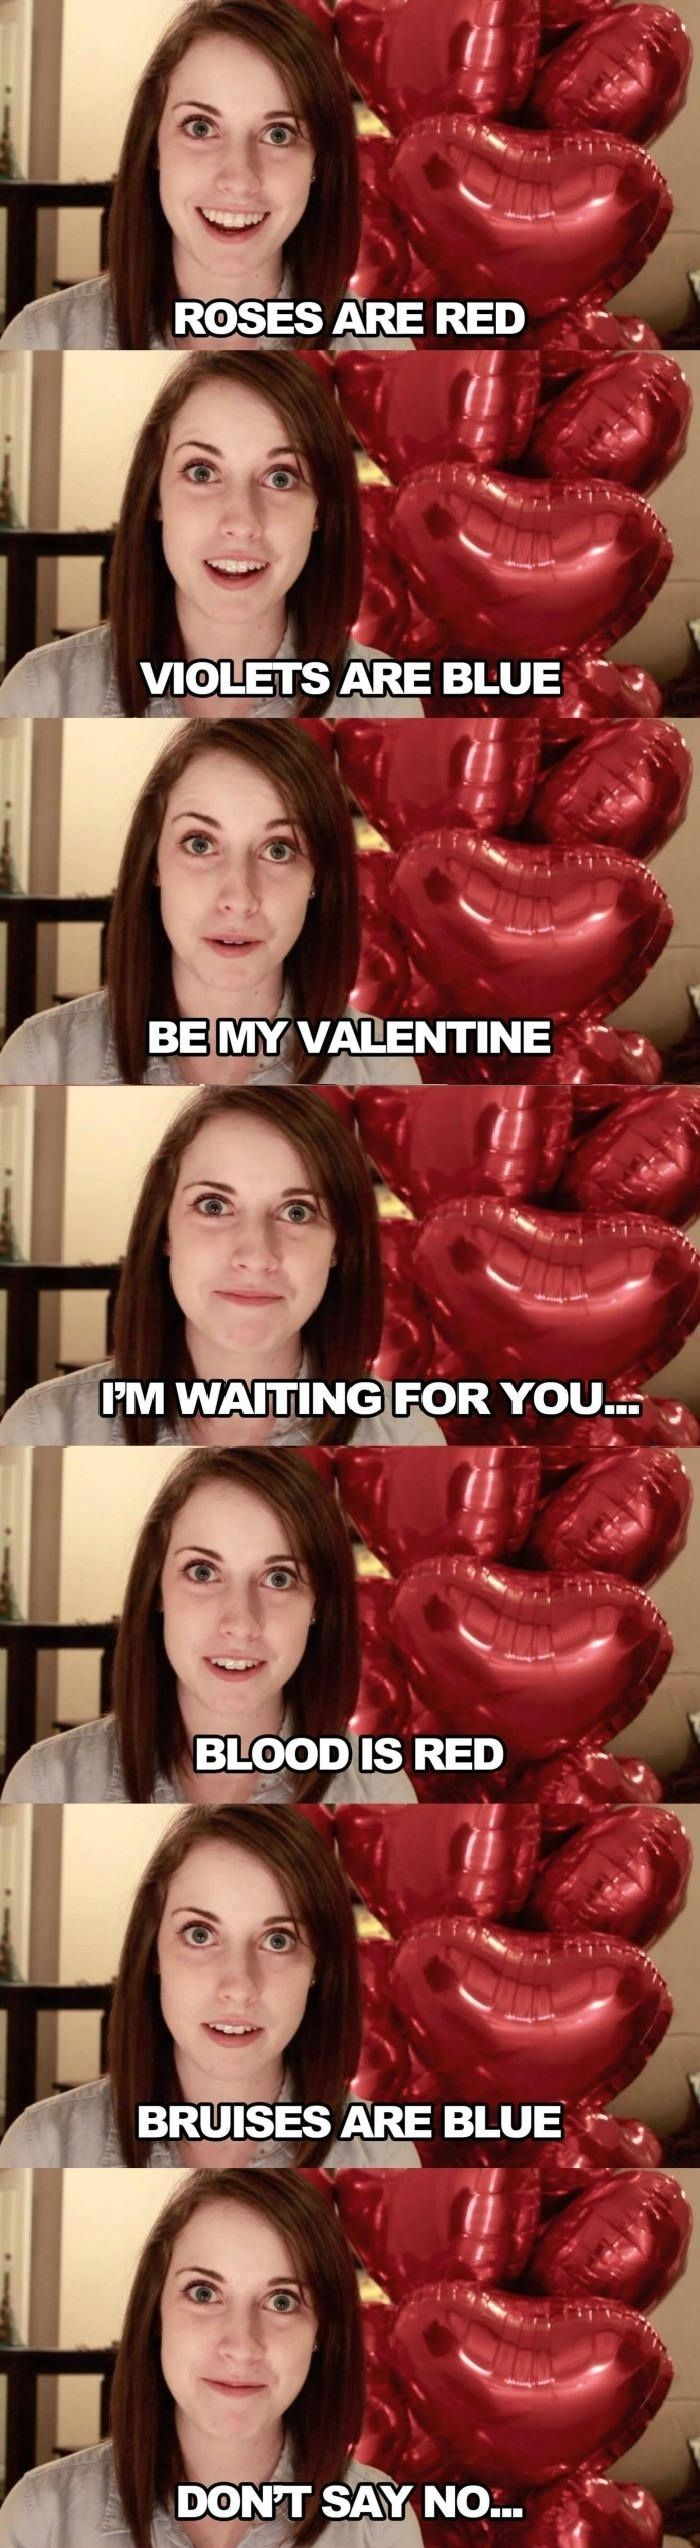 Overly Attached Gf's Poem // funny pictures - funny photos - funny images - funny pics - funny quotes - #lol #humor #funnypictures